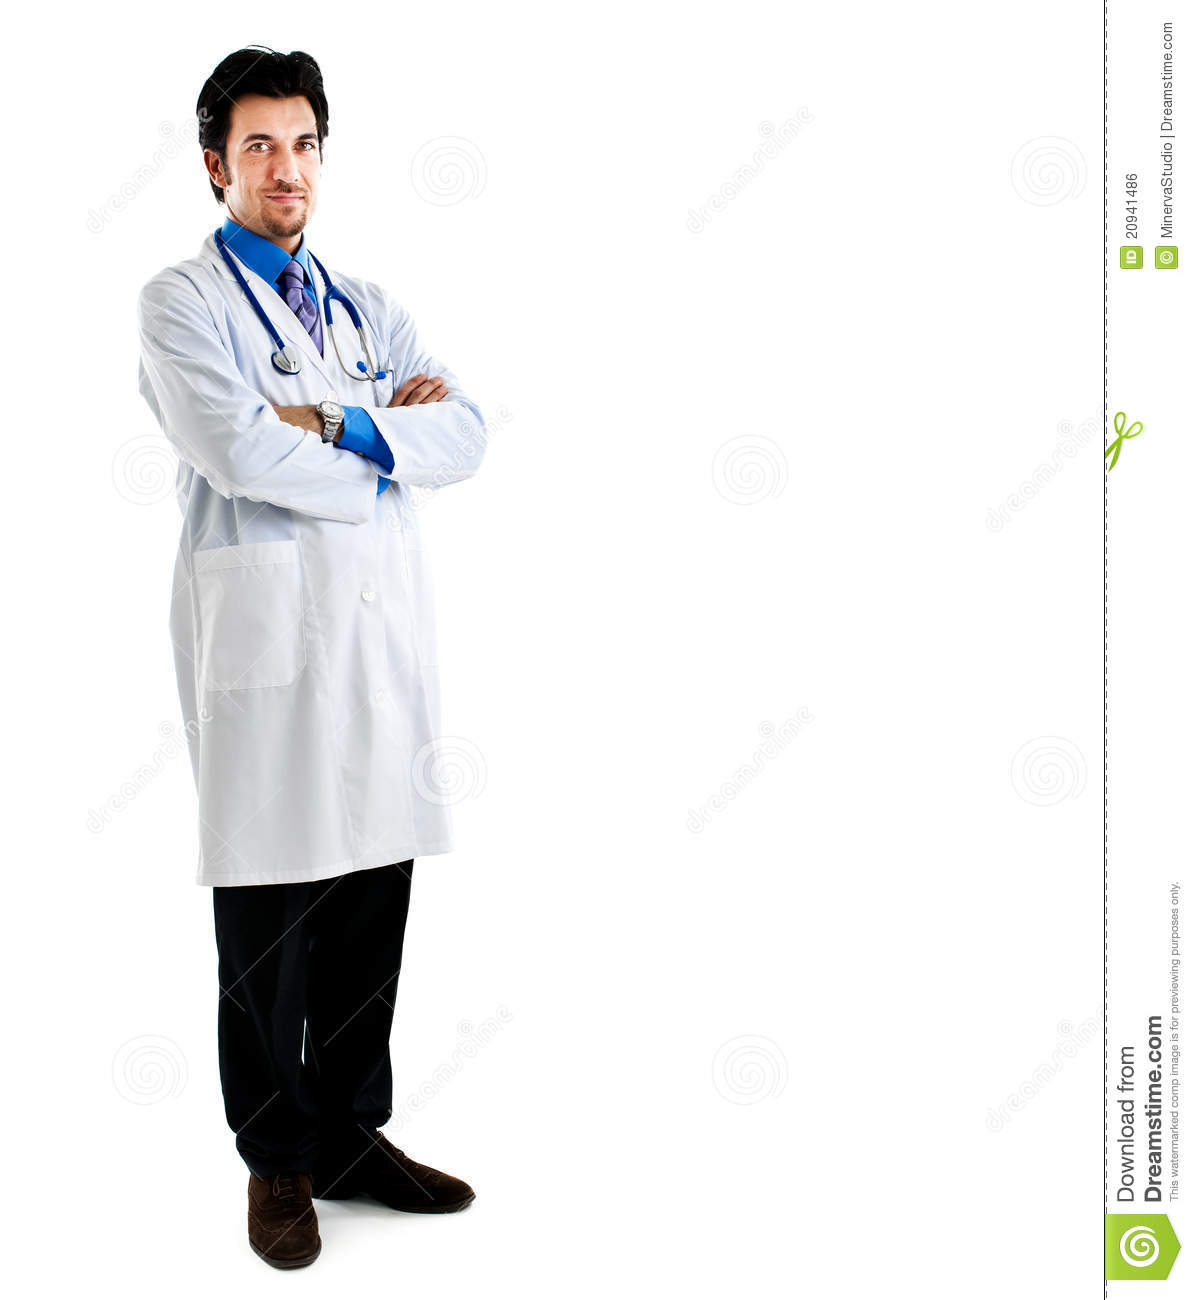 Full length portrait of a doctor isolated on white.